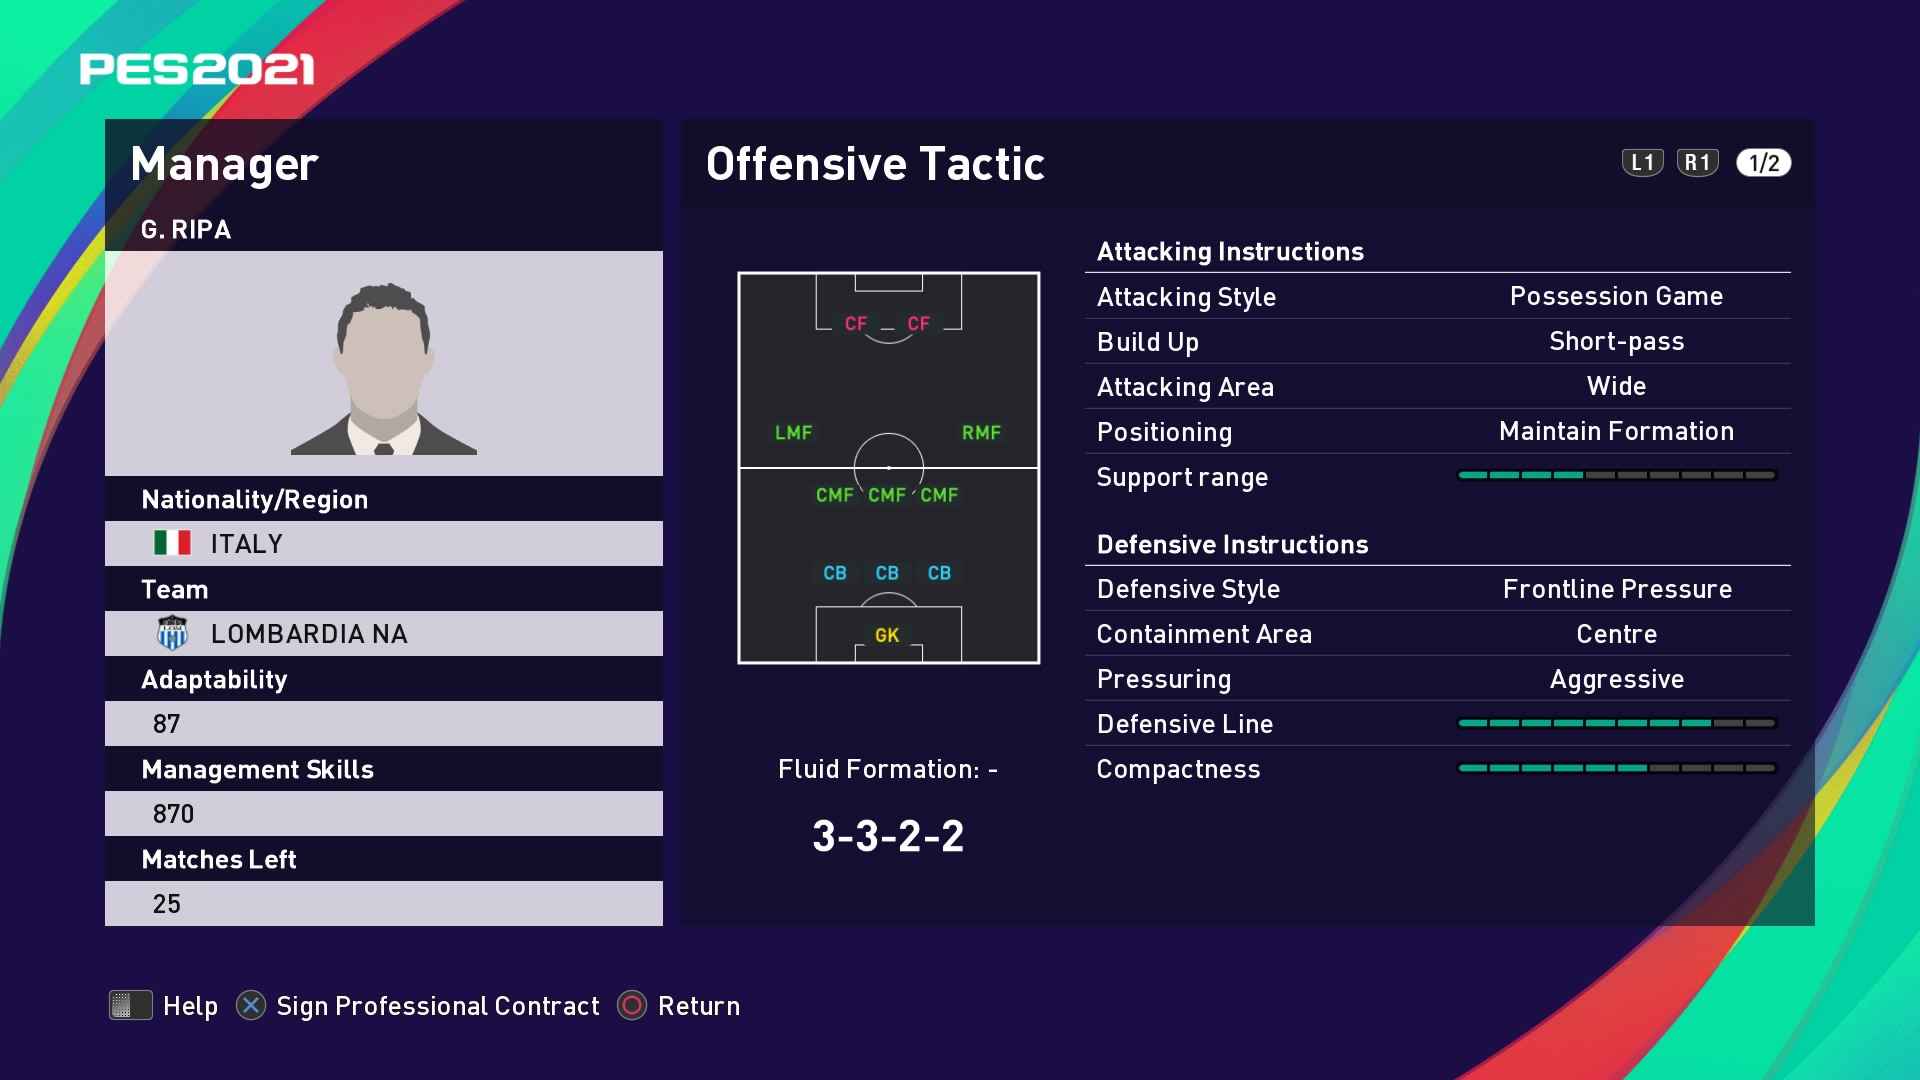 G. Ripa (Inter Milan) Offensive Tactic in PES 2021 myClub